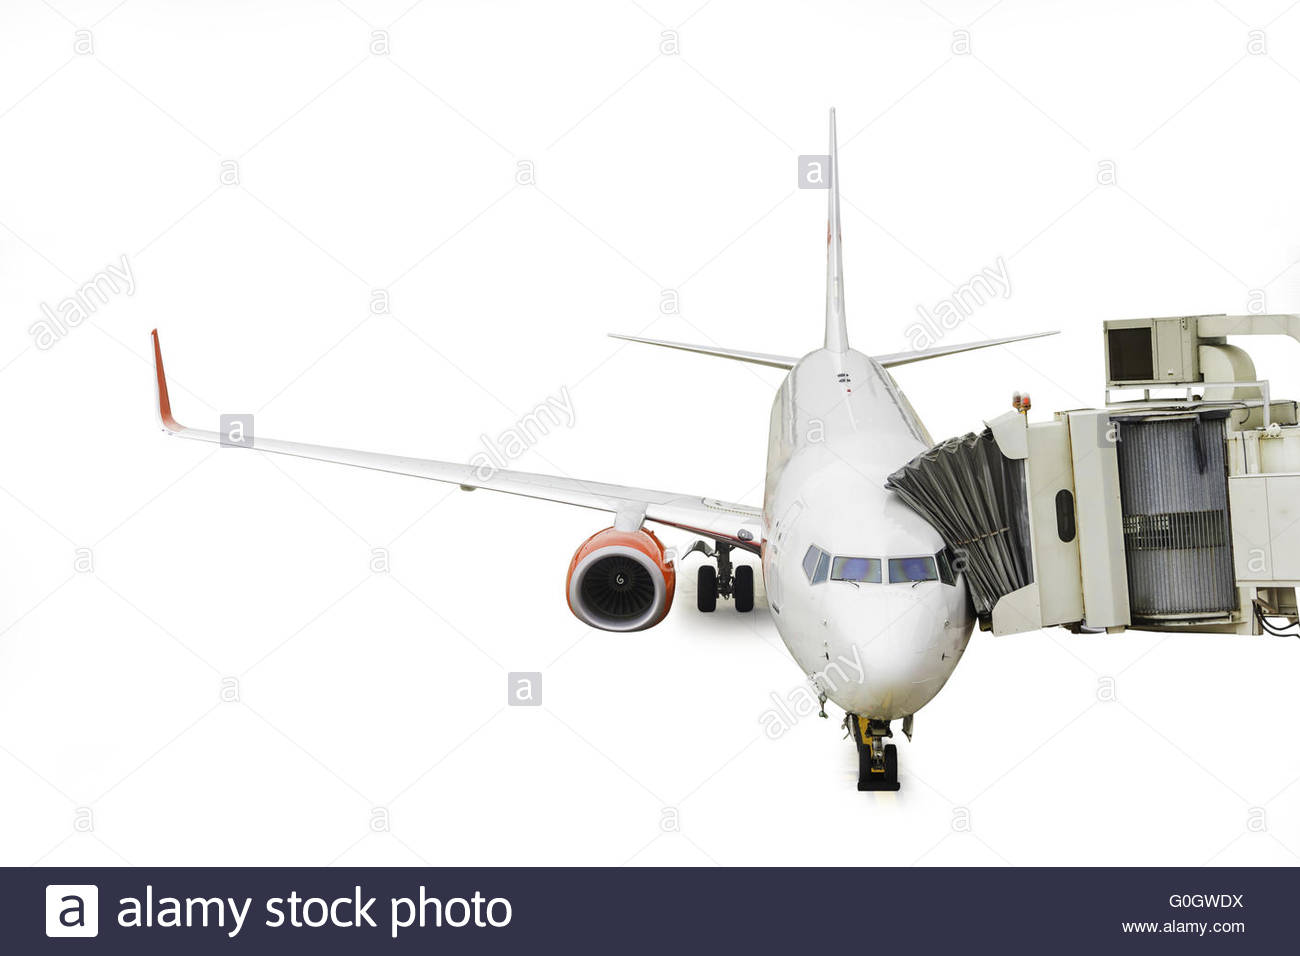 Aircraft maintenance people during refueling. - Stock Image